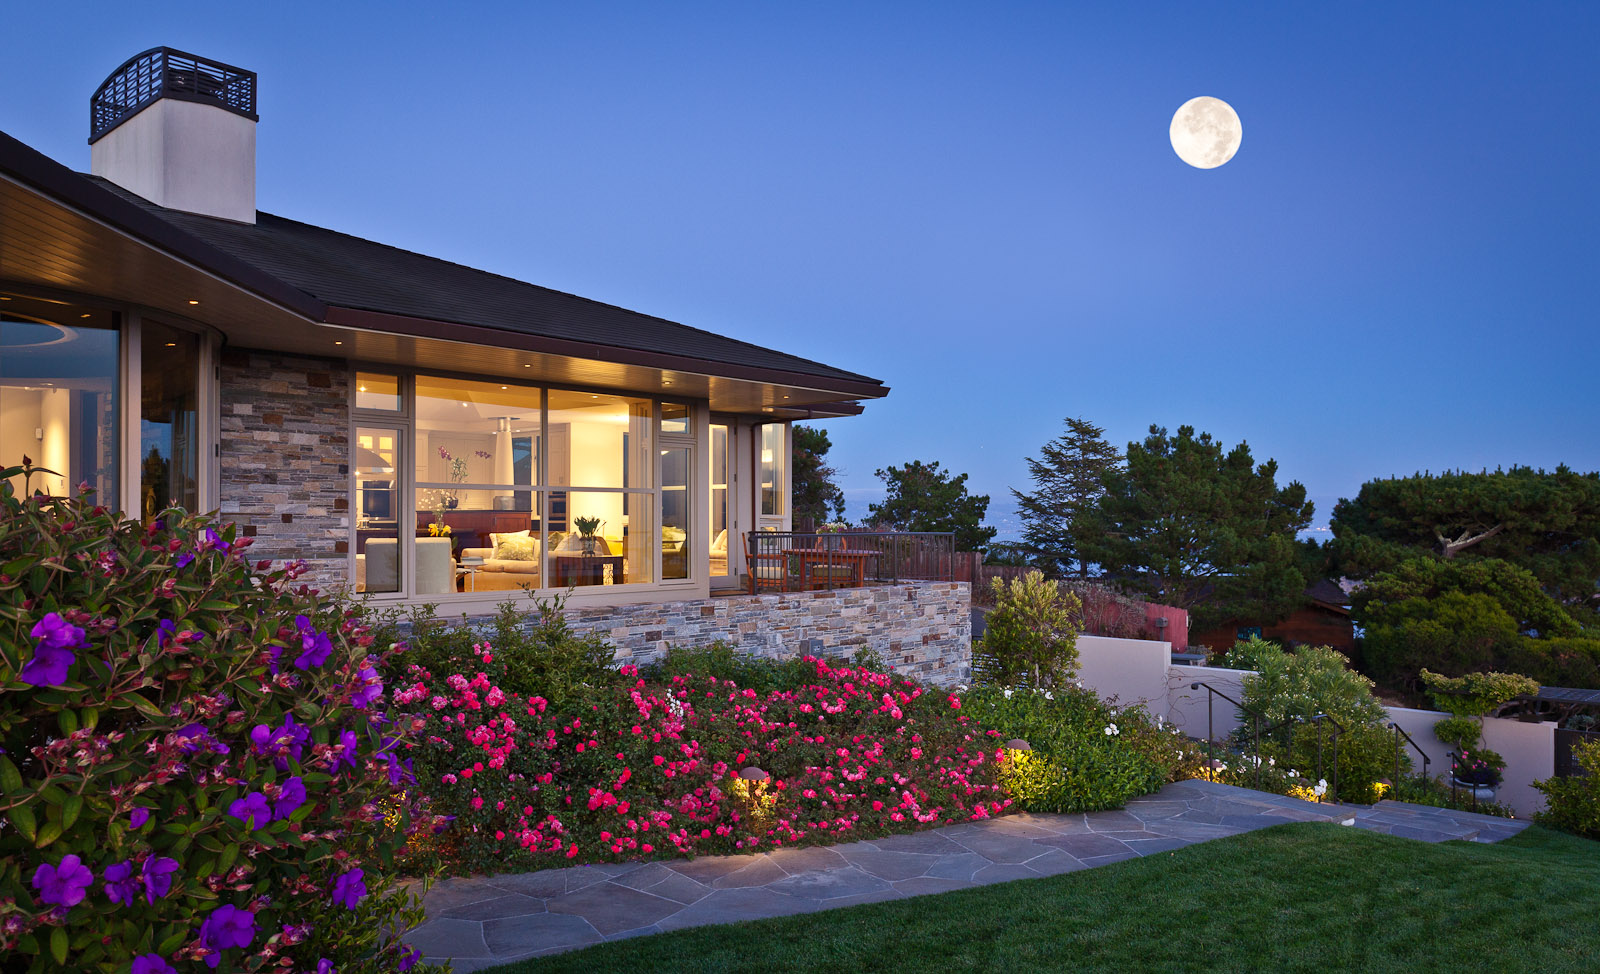 Tiburon home high on the hill with a view to Angel Island and San Francisco. Full moon rising over the horizon. Residence designed by Sutton Suzuki Architects. Photo by Jay Graham